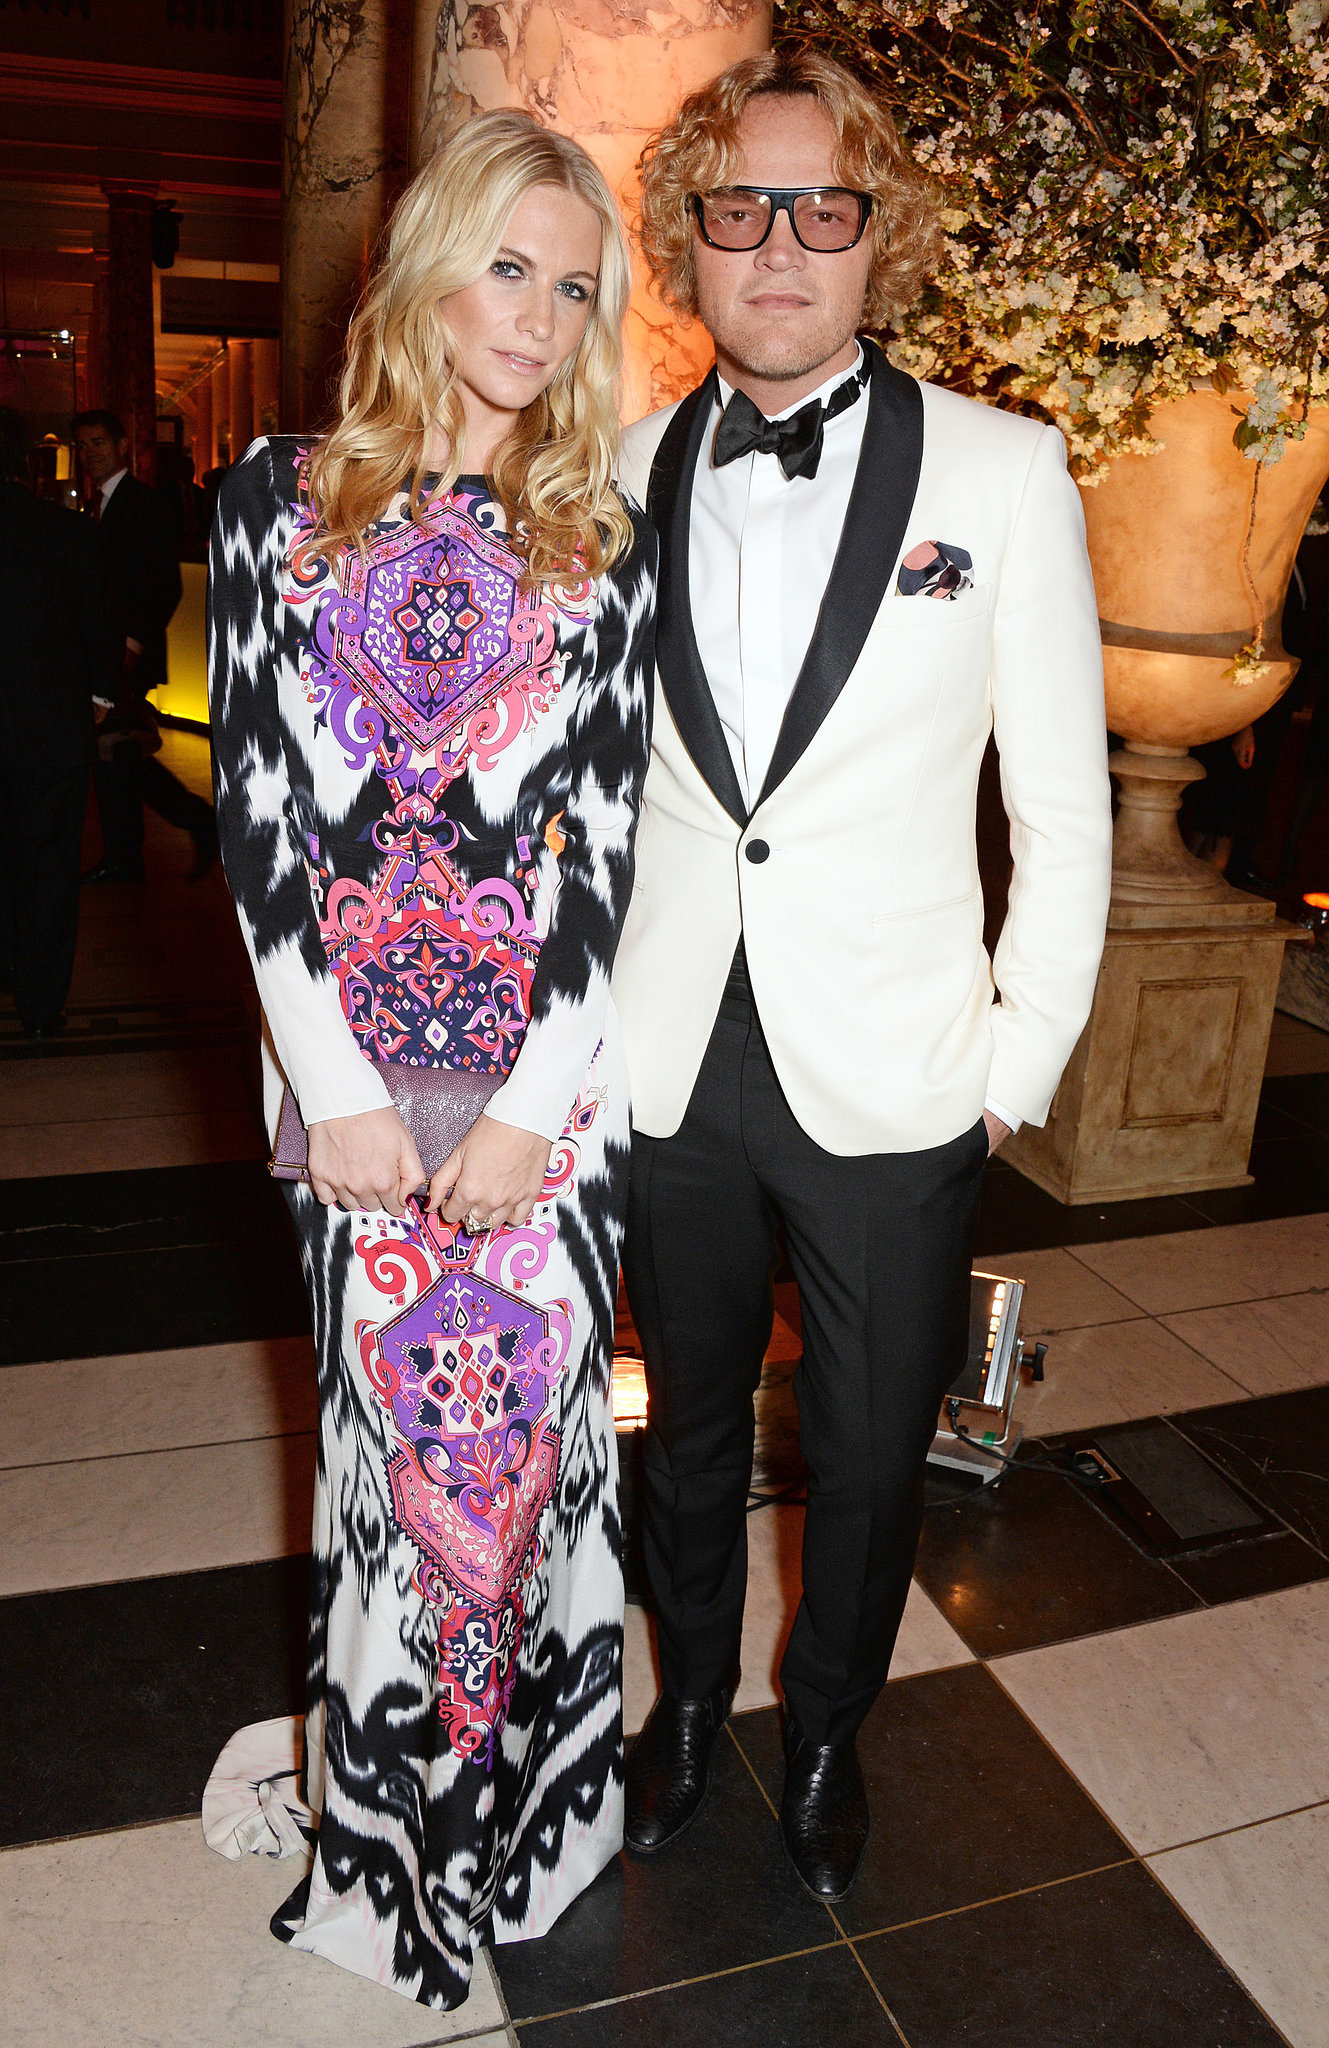 Poppy Delevingne and Peter Dundas